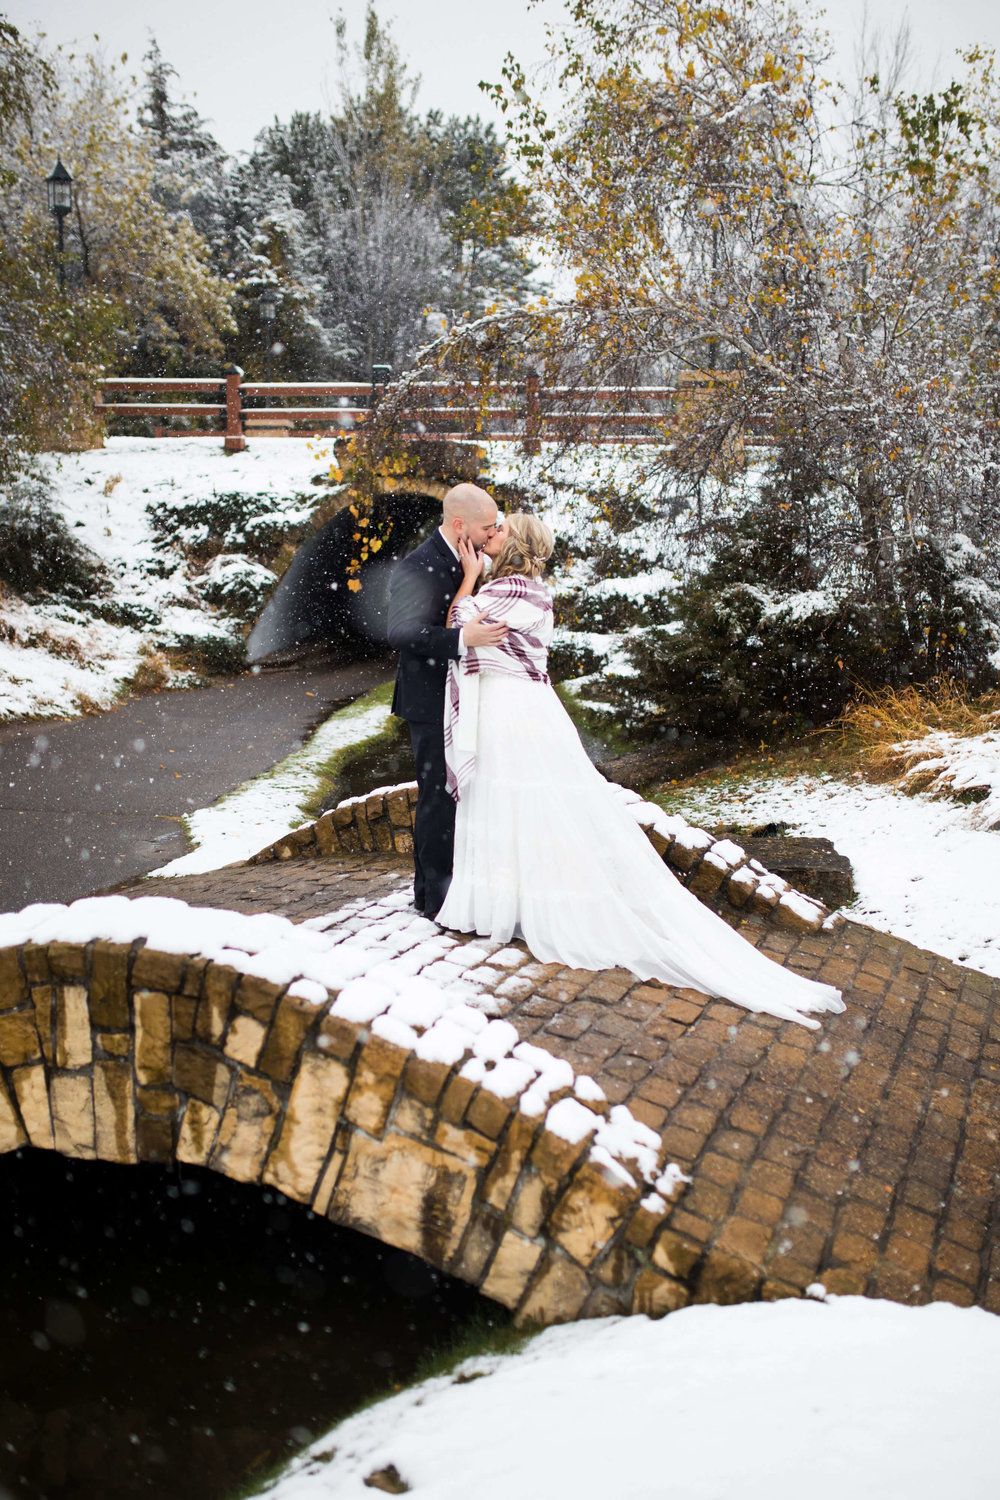 winter wedding | plaid shawl | bridge with snow | Minnesota wedding photographer Studio KH wedding dress details | wedding blog | Sixpence Events 70 Ways to Photograph Your Wedding Dress.jpg